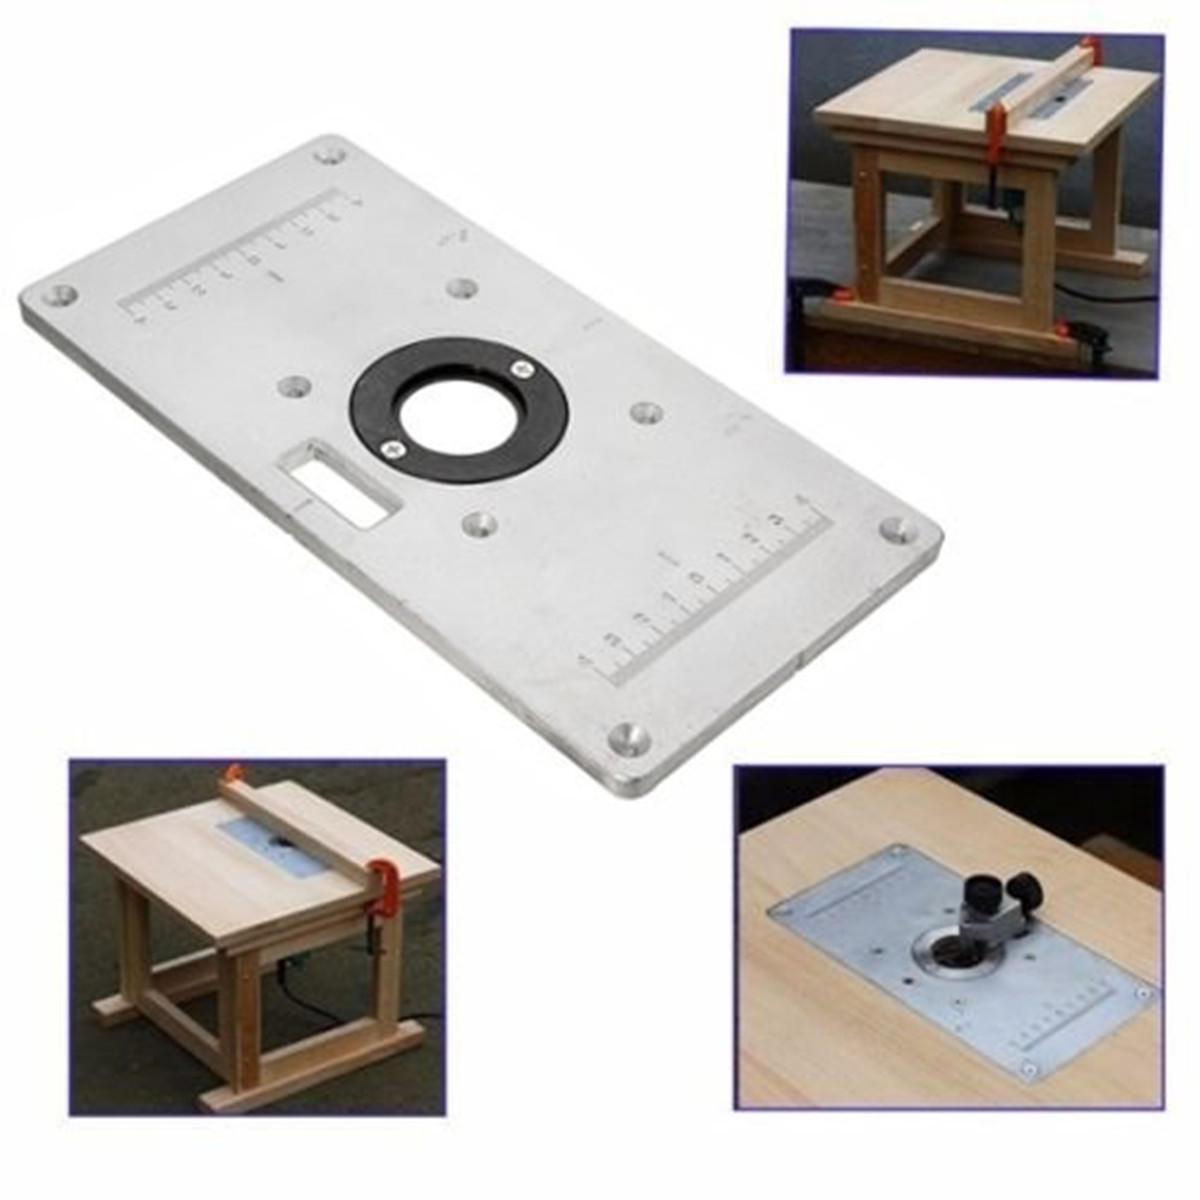 235mm X 120mm X 8mm Aluminum Router Table Insert Plate For Wood Working Benches